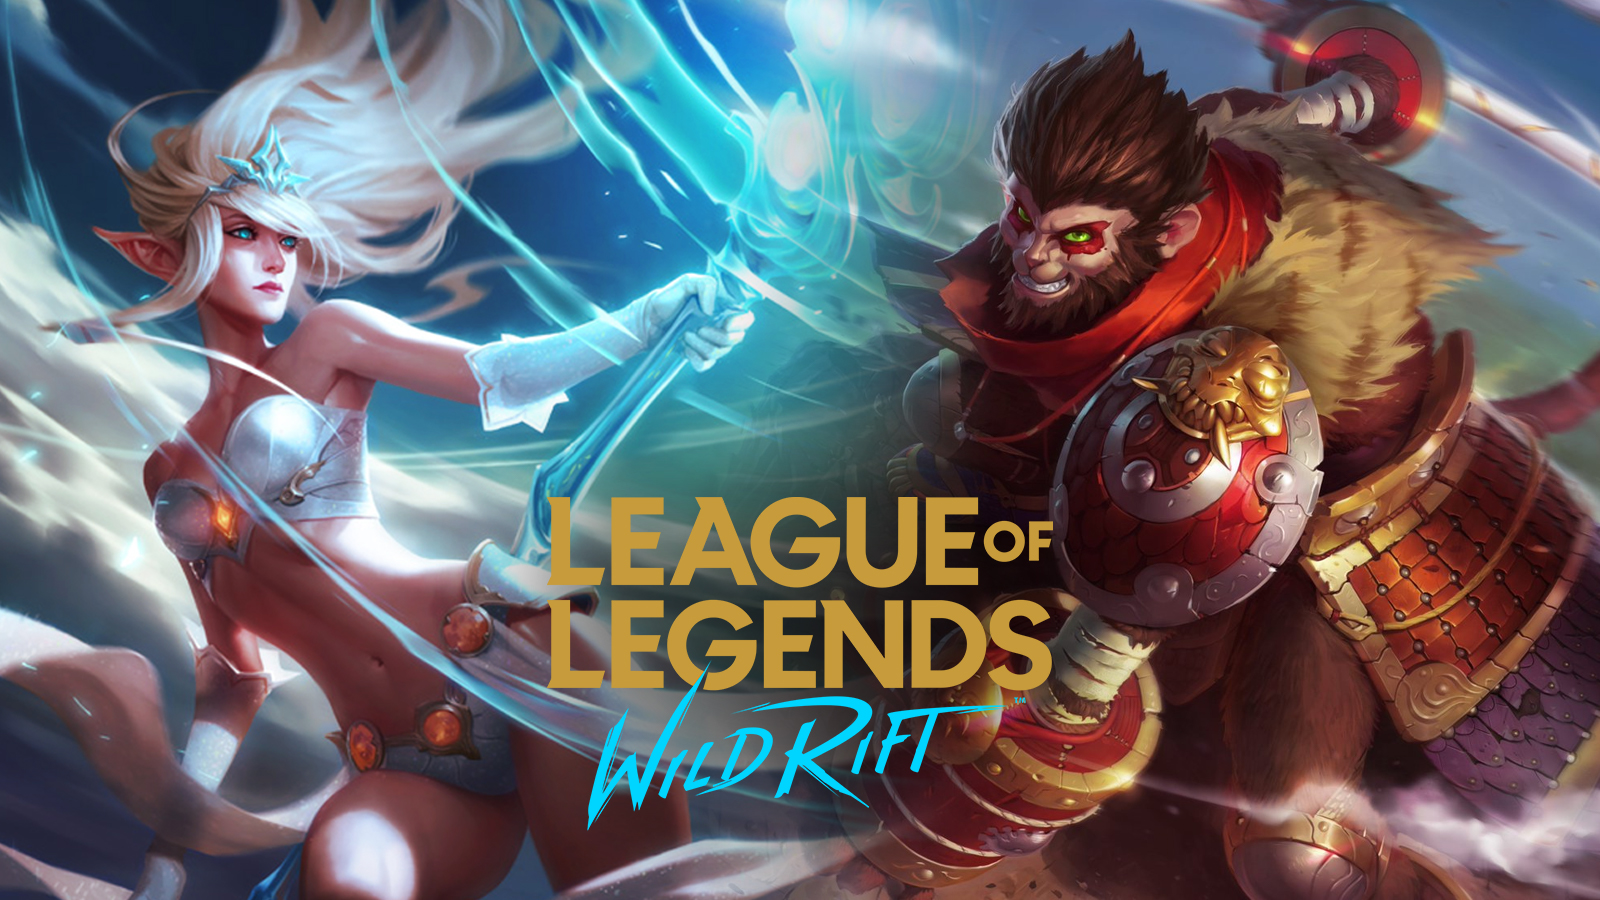 Janna and Wukong in Wild Rift